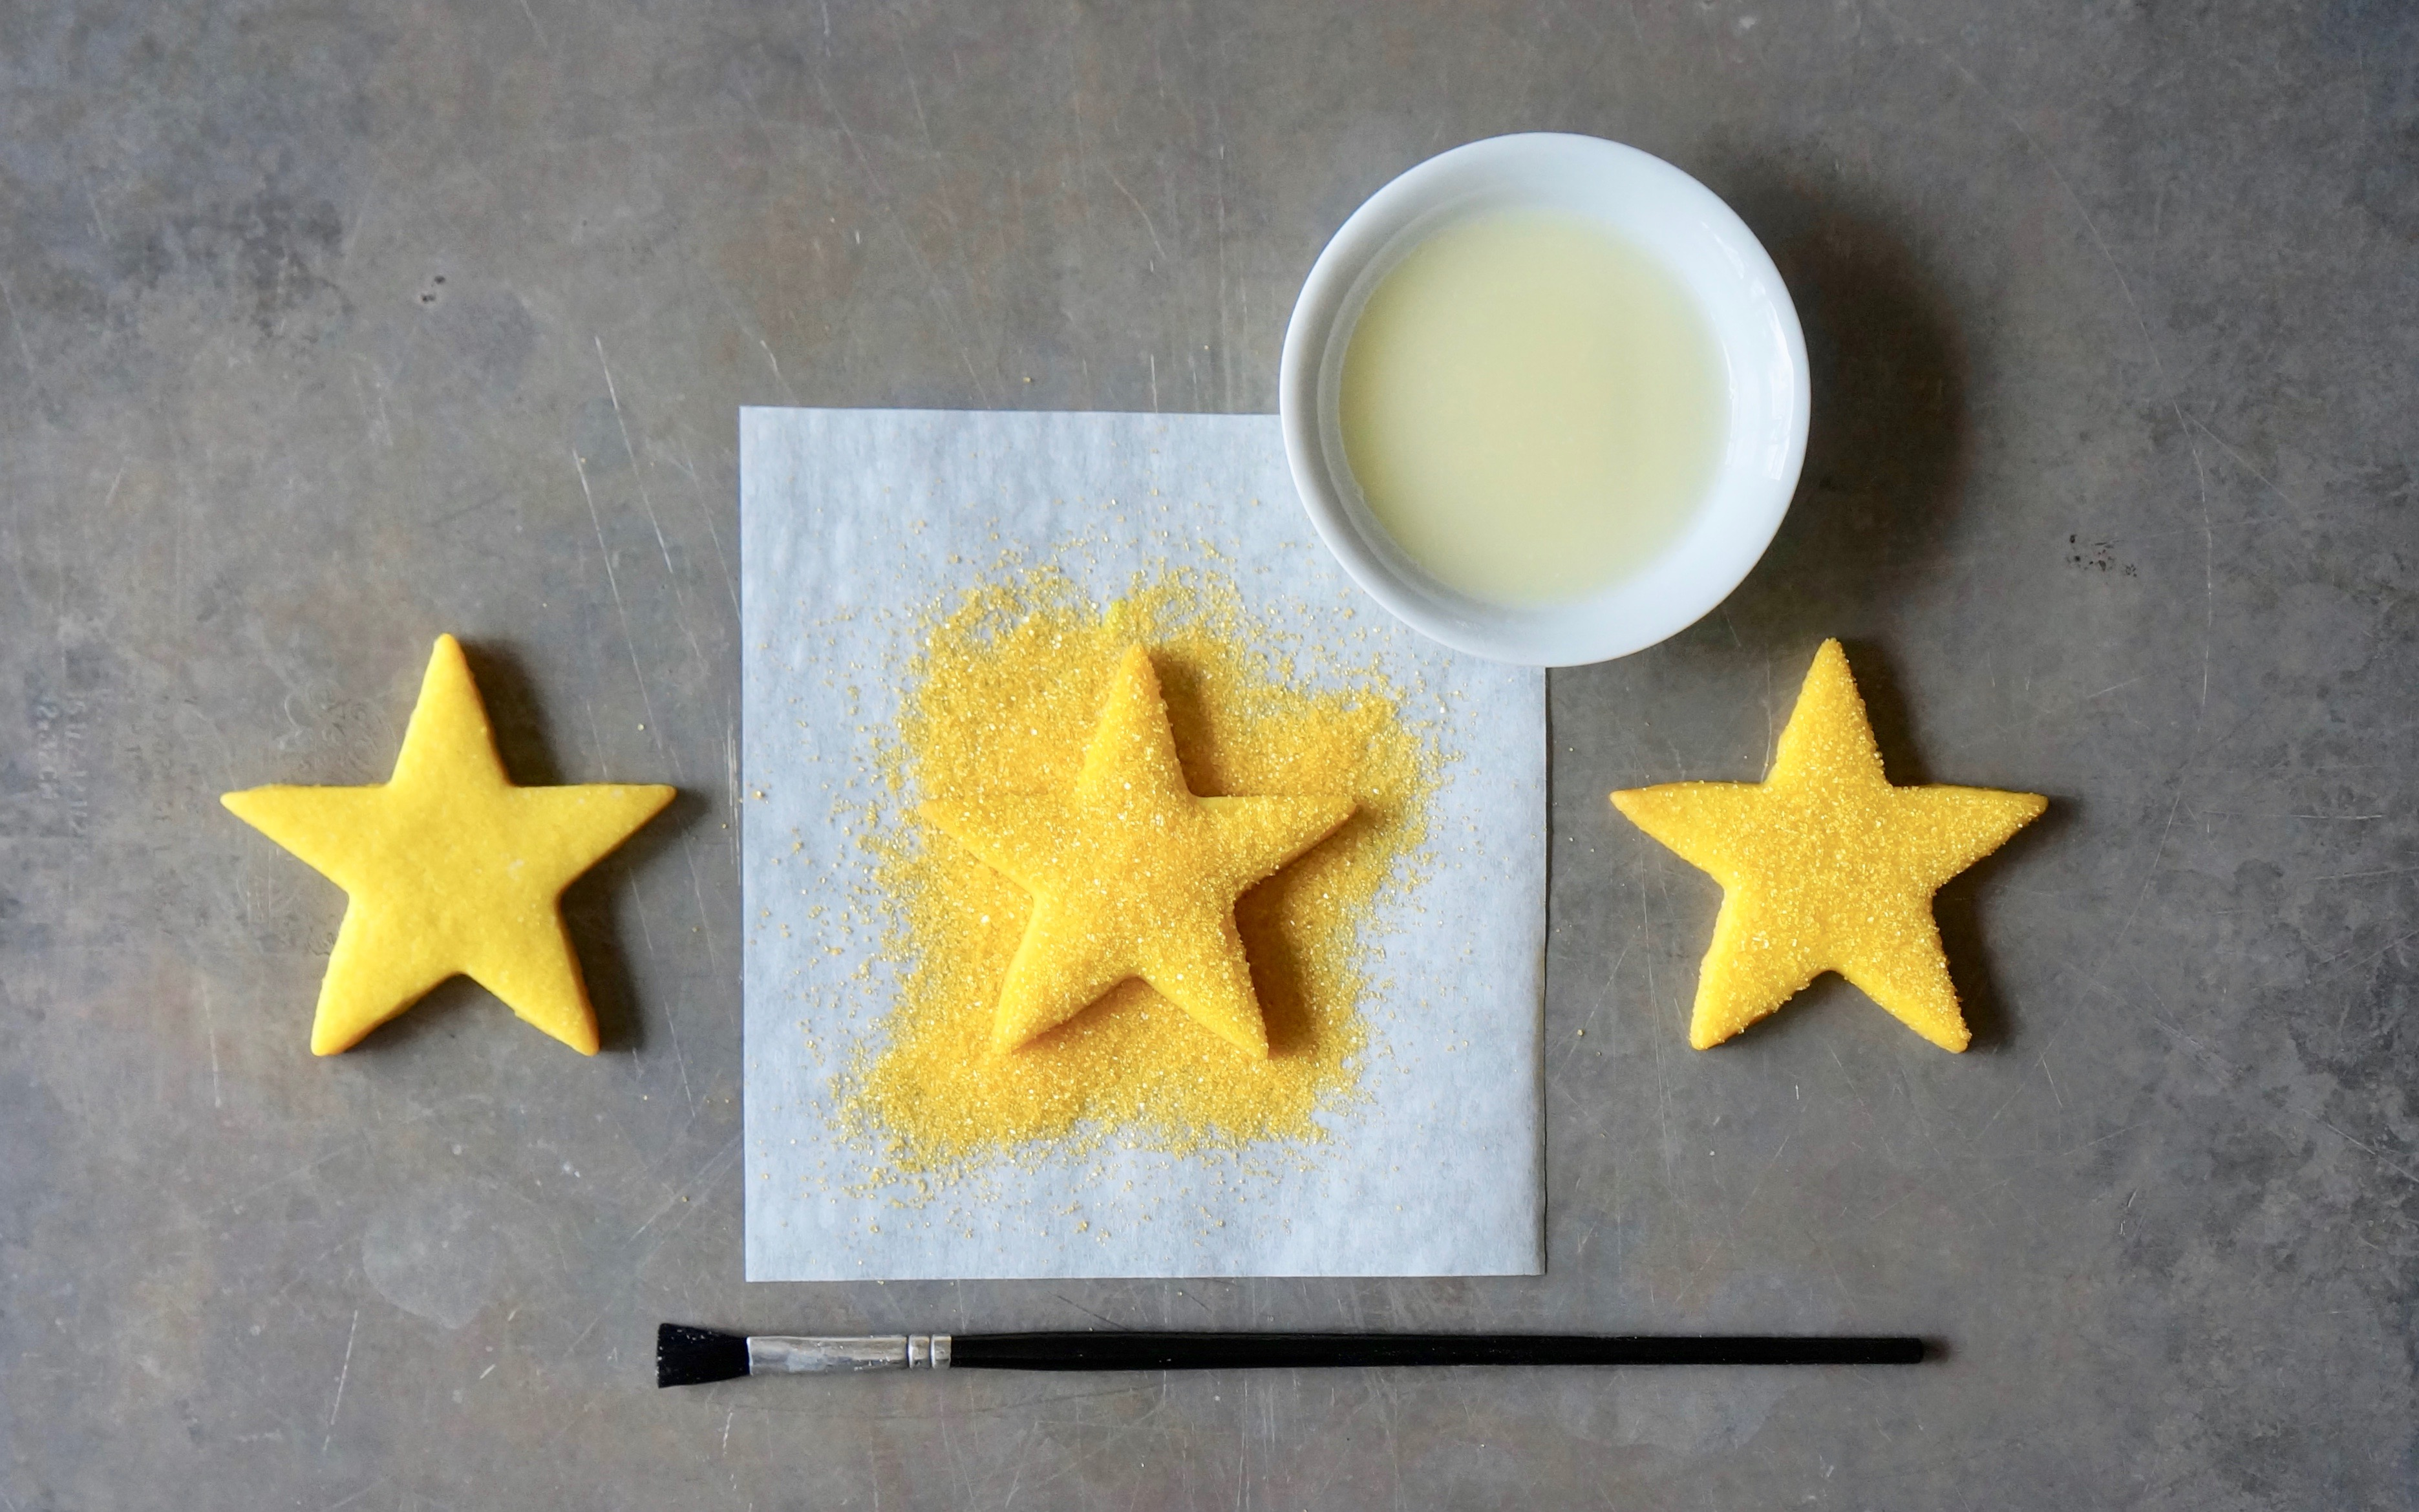 Sparkling-Gold-Star-Sugar-Cookies-Rebecca-Gordon-Editor-In-Chief-Buttermilk-Lipstick-Culinary-Entertaining-Techniques-How-To-Decorate-Christmas-Cookies-RebeccaGordon-Pastry-Chef-Birmingham-Alabama